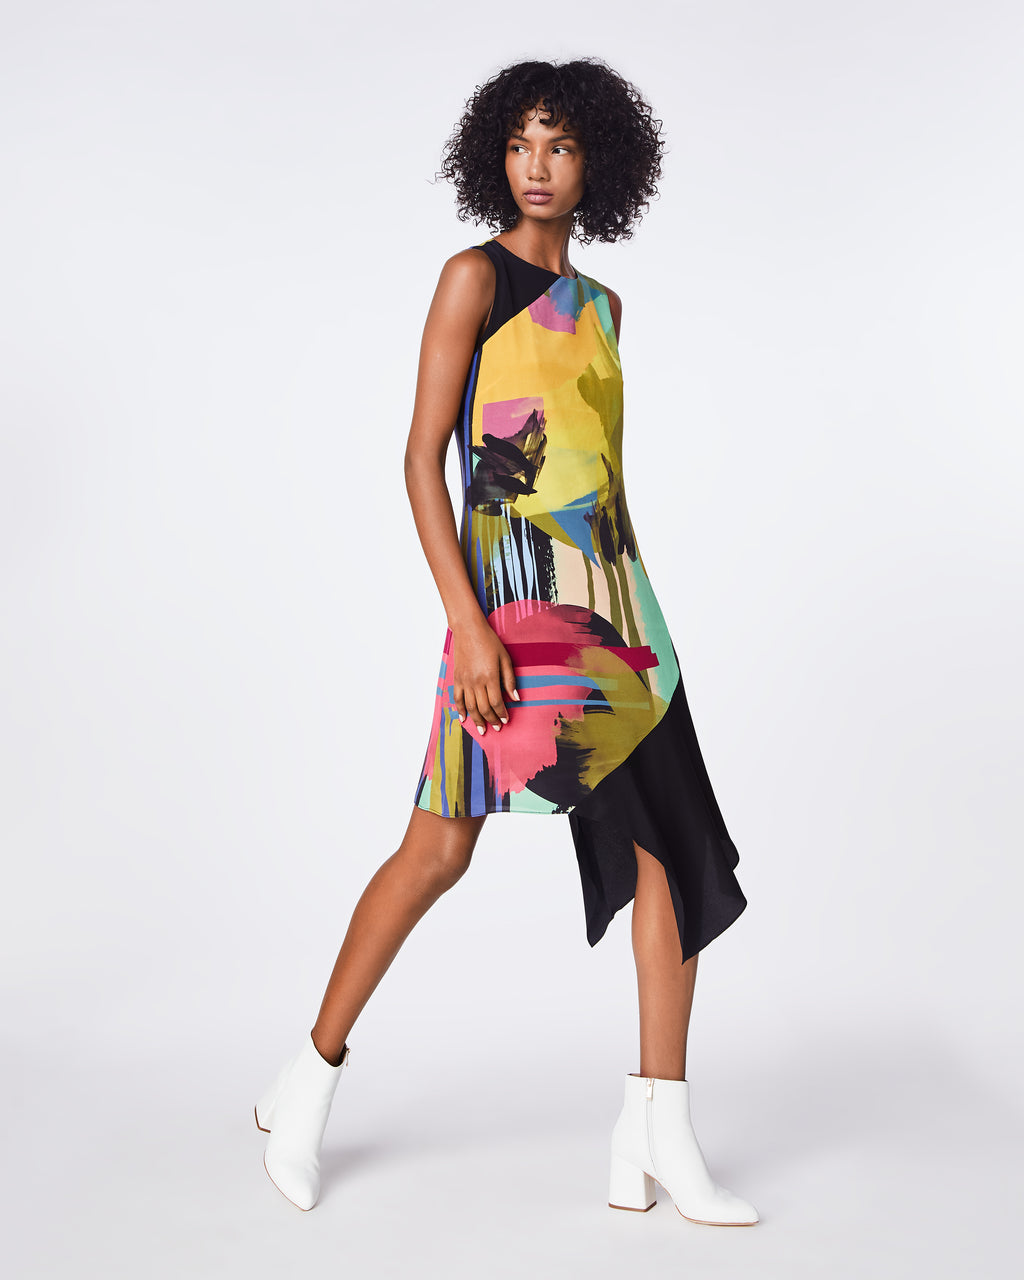 BO10160 - ABSTRACT PAINT ASYMMETRICAL DRESS - dresses - midi - A bold, floral print is balanced by an easy shift silhouette on this asymmetrical silk blend dress. Pair it with pumps or boots for the ultimate statement.